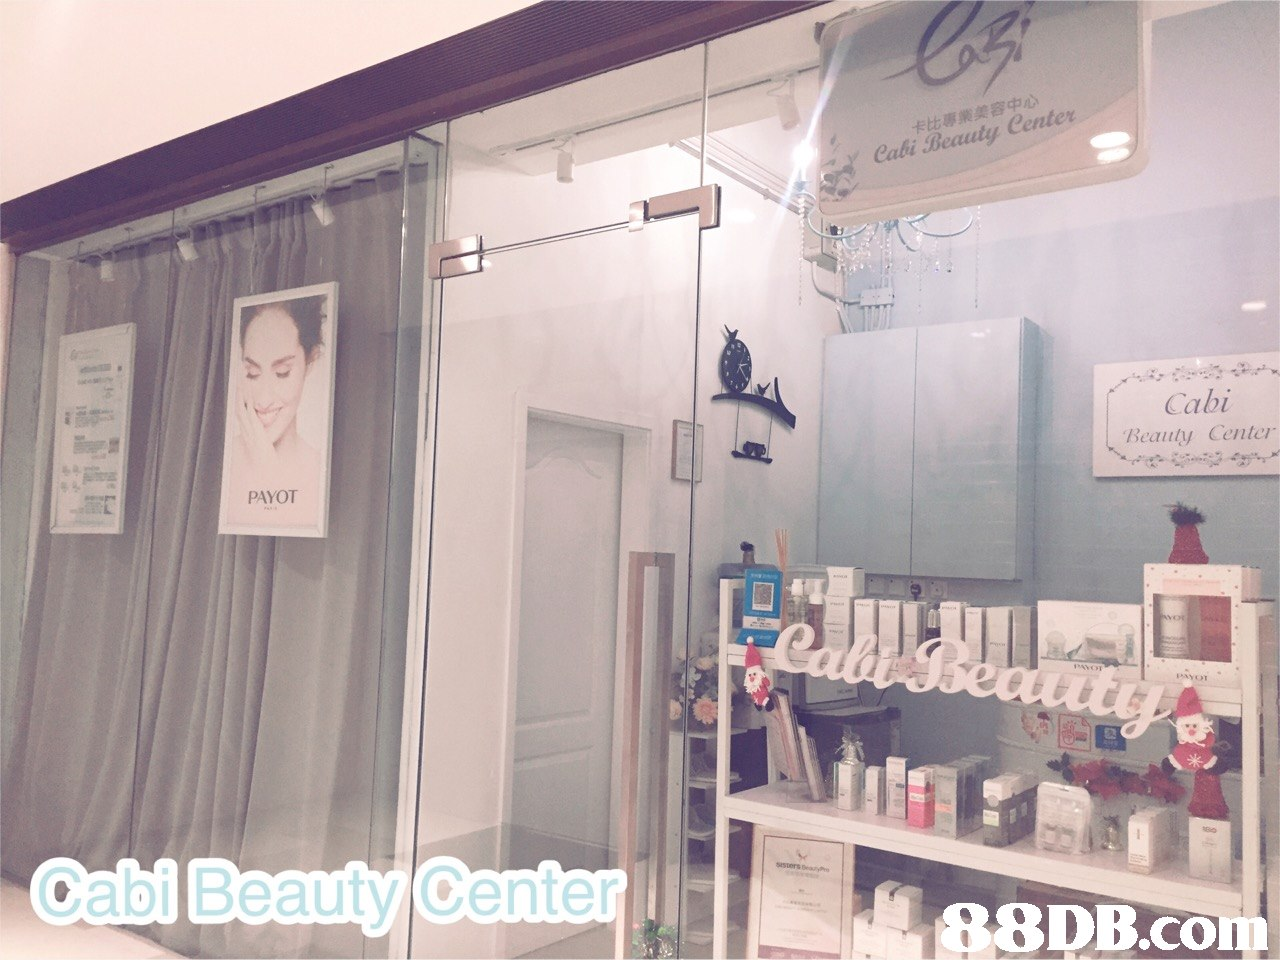 容中心 Center Cabi Beauty Cabi Beauuly Center PAYOT   product,window,